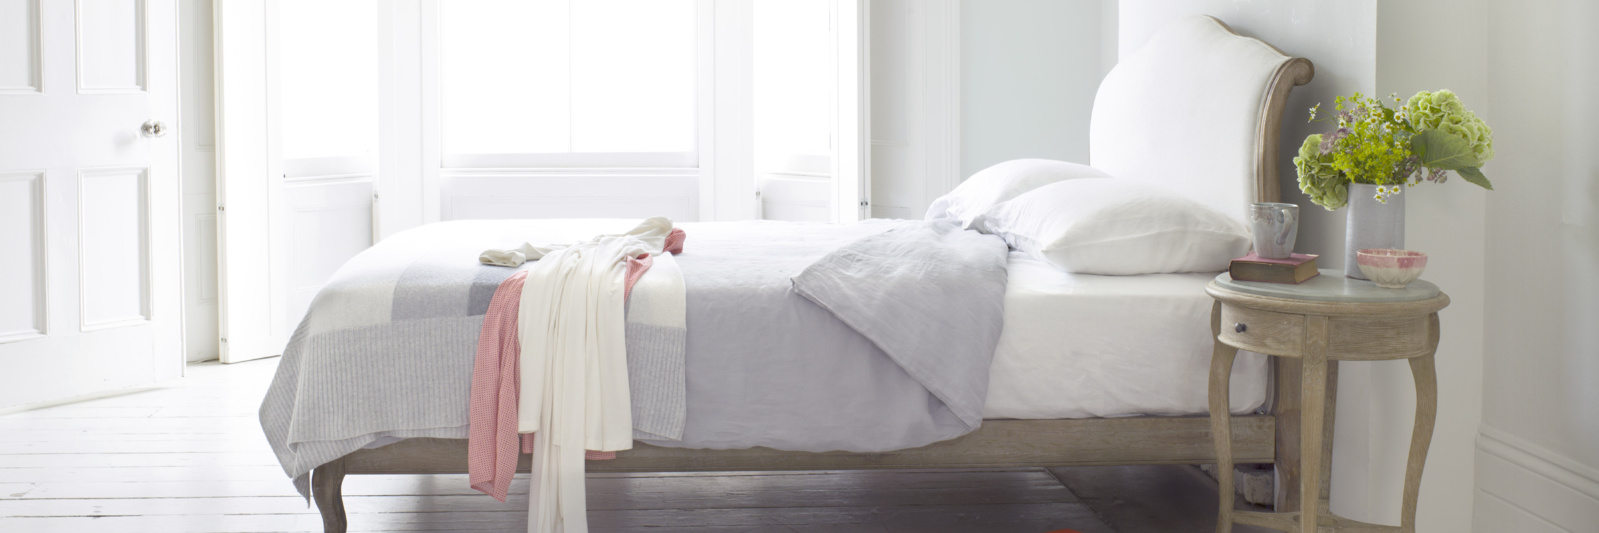 Coco - single French bed handmade from weathered oak